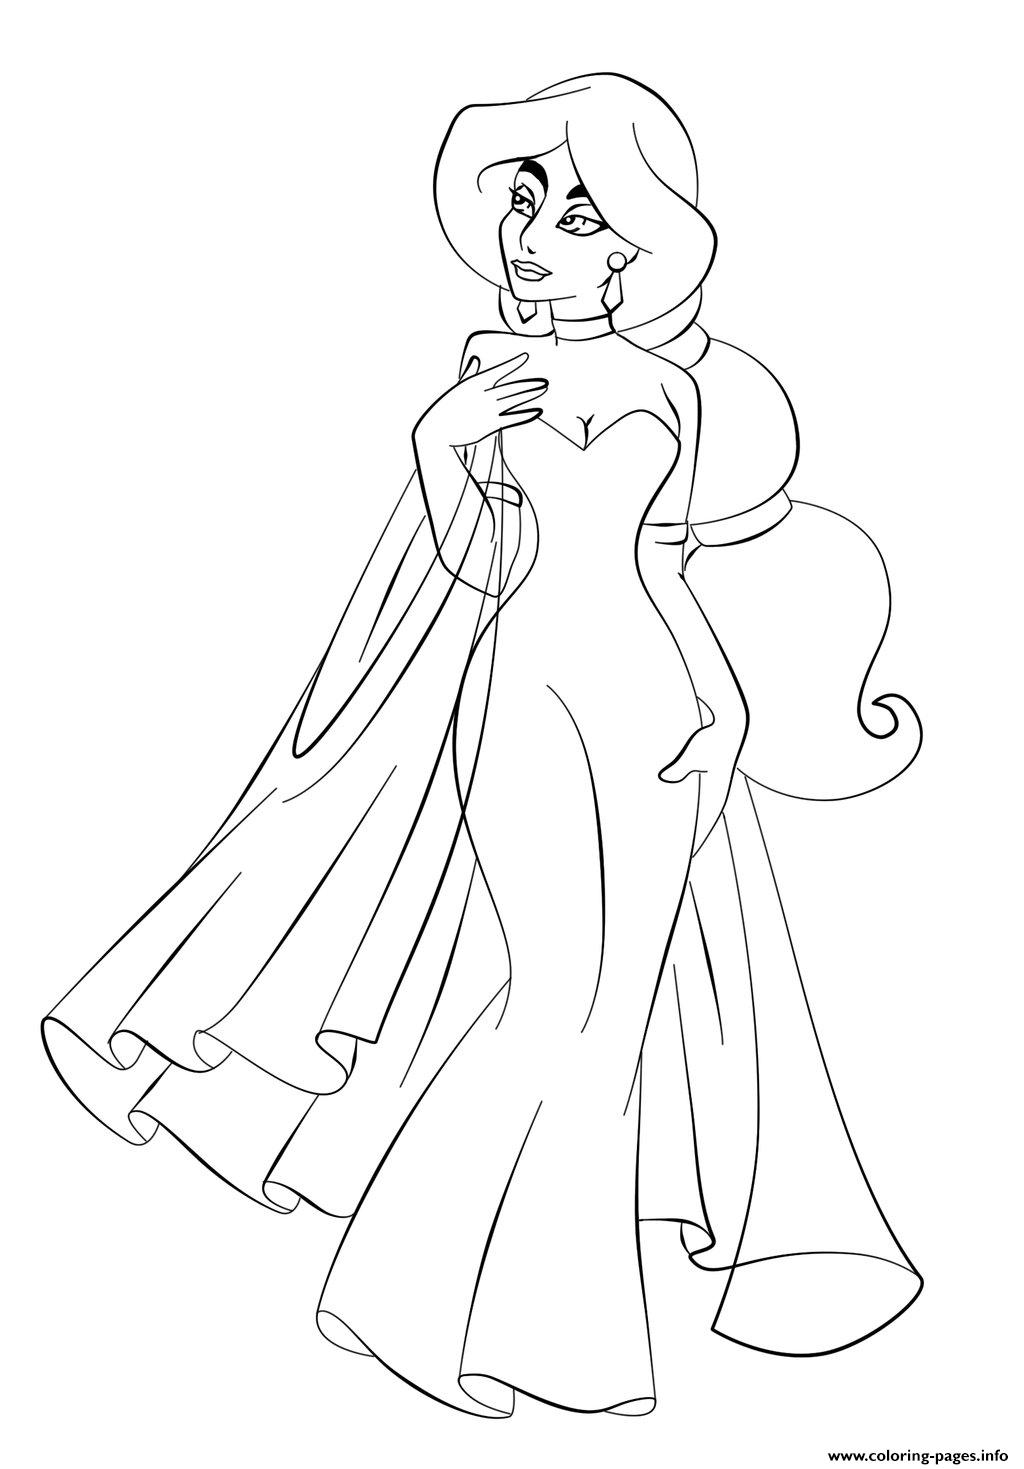 Jasmine in wedding dress disney princess s6993 coloring for Jasmine the princess coloring pages